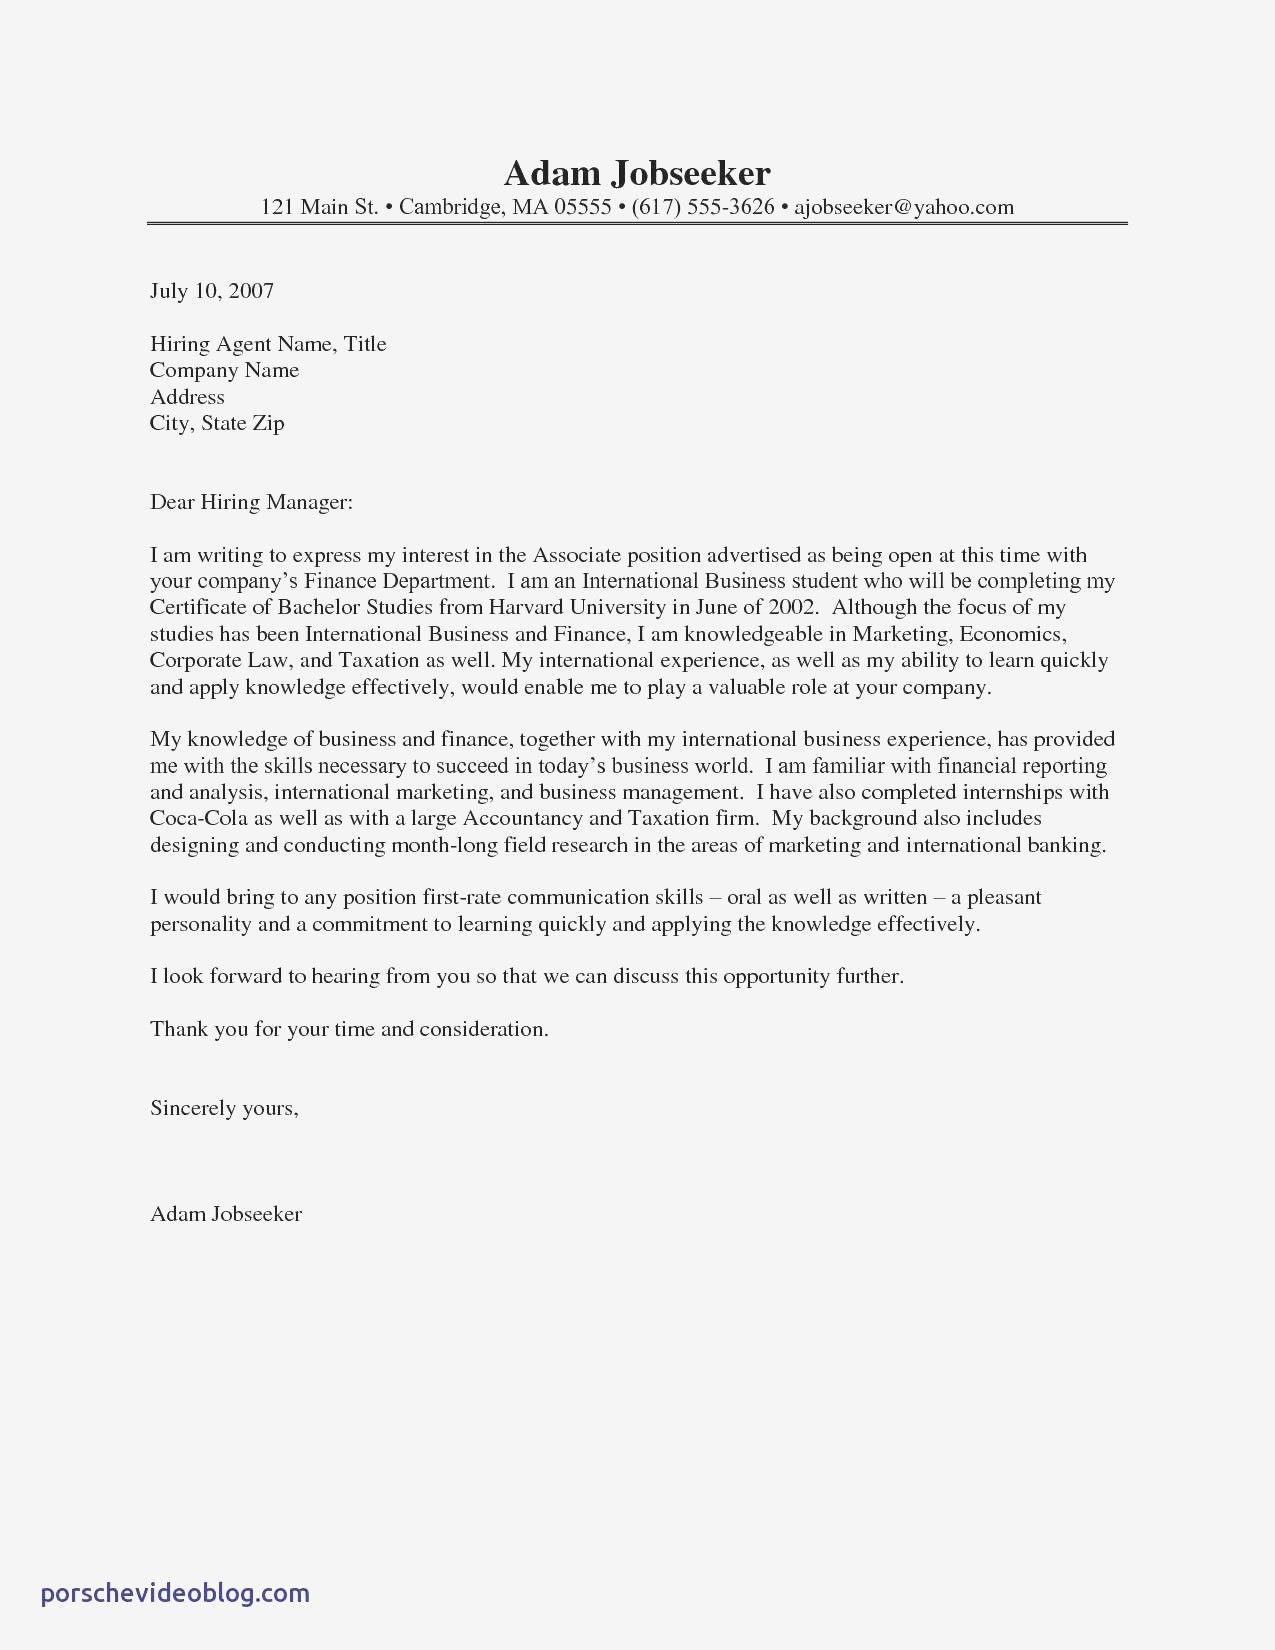 Download New Cover Letter Examples For A Job Application